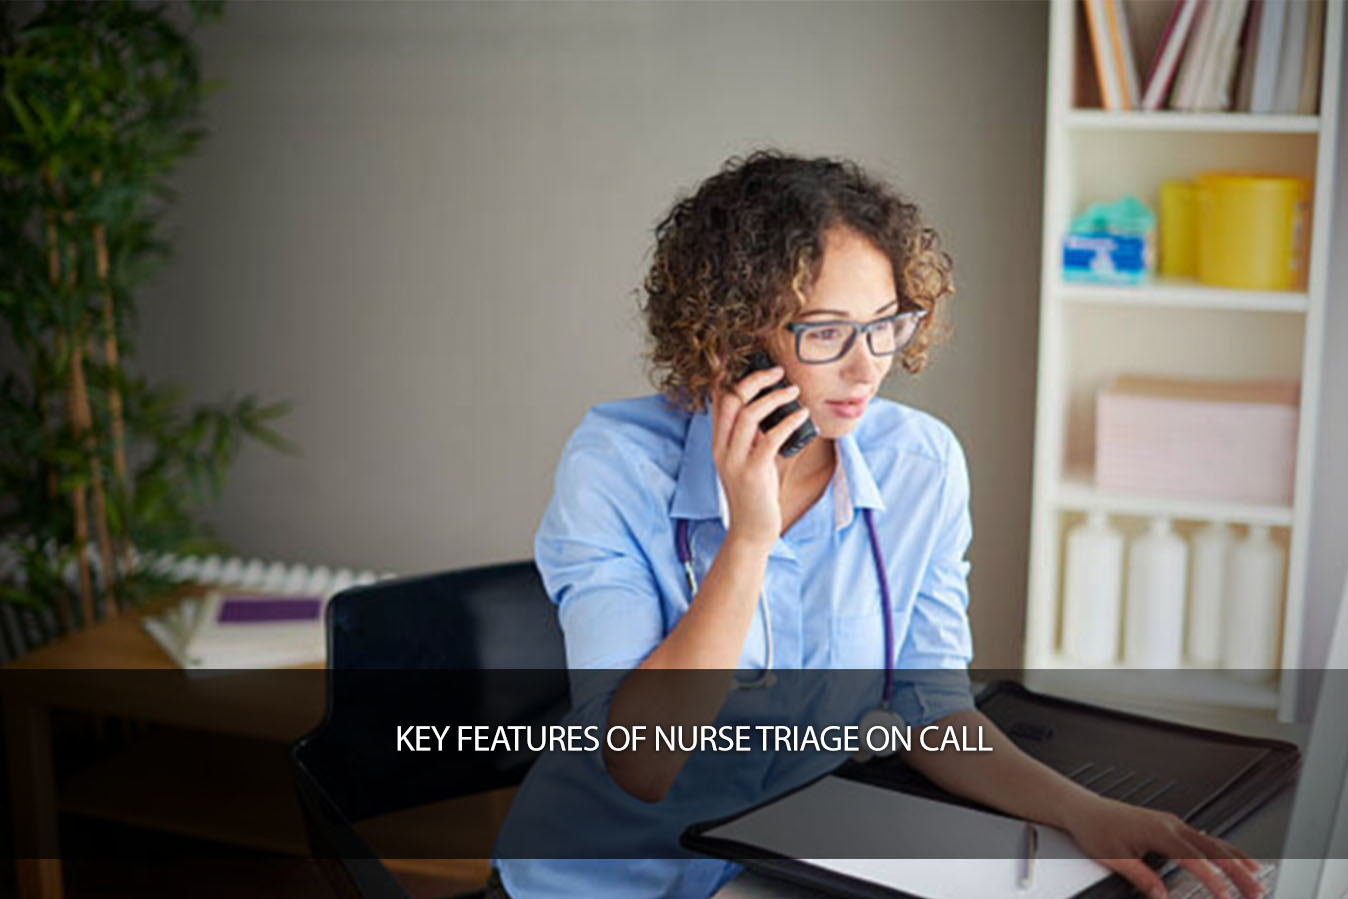 Customizing Care for Patient Populations with a Nurse Triage System